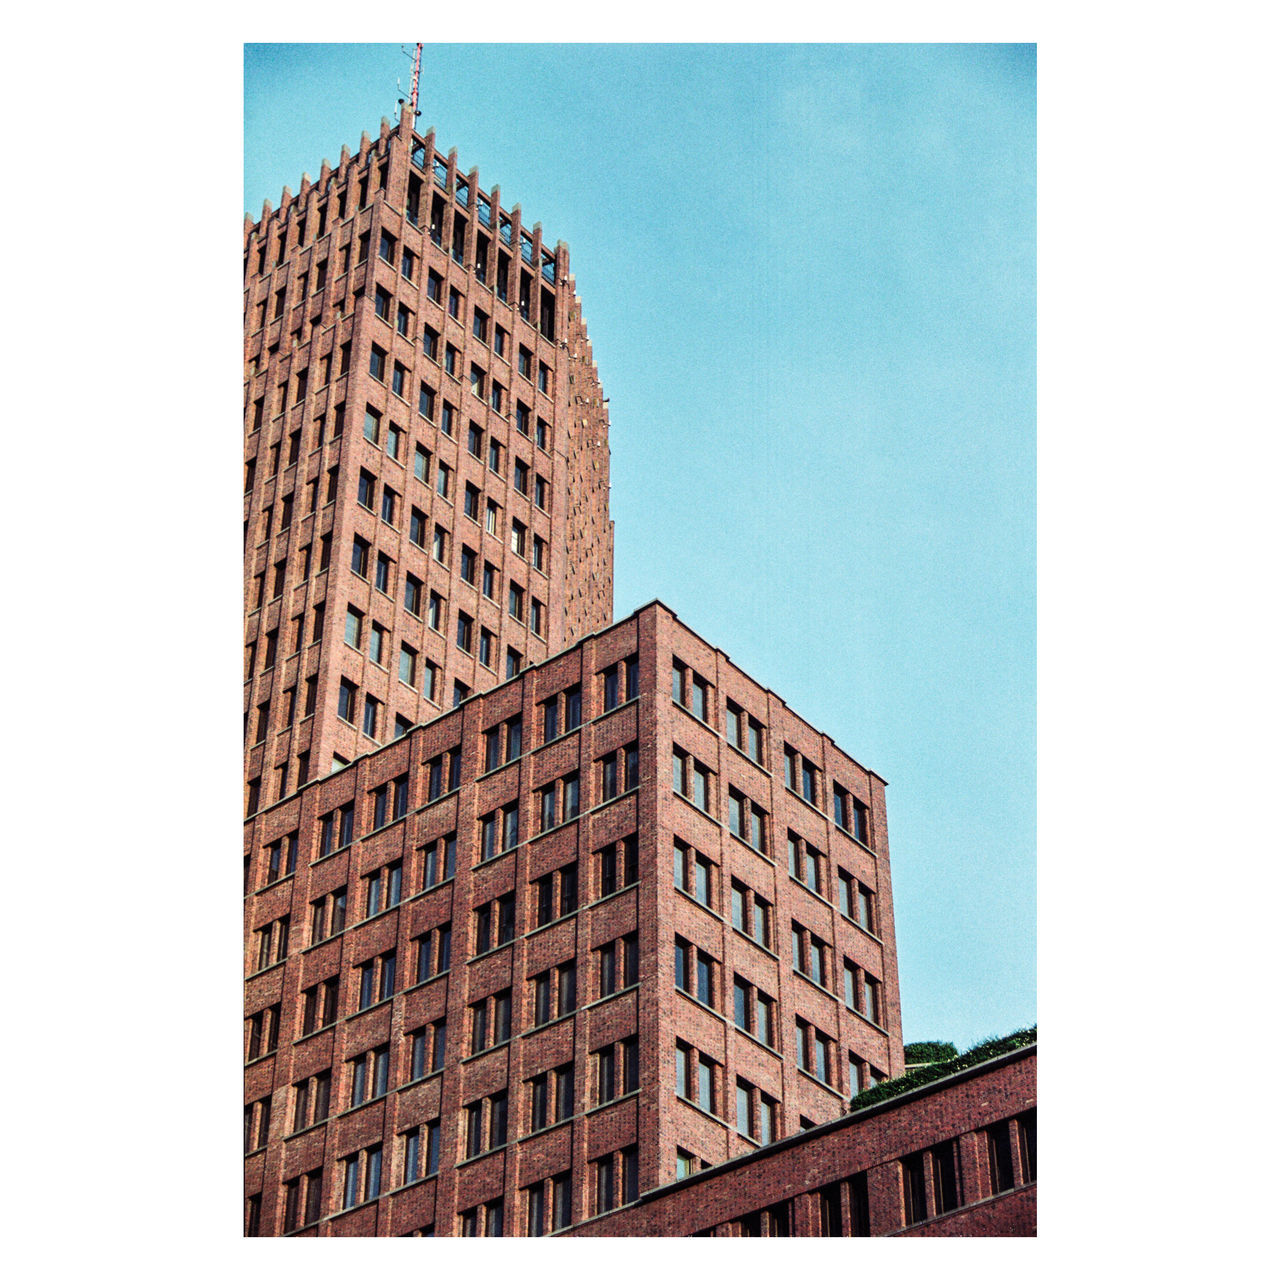 I don't like this part of Berlin. A place where people just go to work and that's it. Nothing important. Except it's the best place for movies in OV and for bit of architecture photography. Potsdamer Platz, Berlin | Canon EOS 3, Kodak Portra 160 | somewhere around 2015 35mm 35mm Film 35mmfilm Architecture Building Exterior Canon Eos 3 City Ishootfilm Ishootfilmsendmoney Kodak Kodak Portra160 Modern Skyscraper